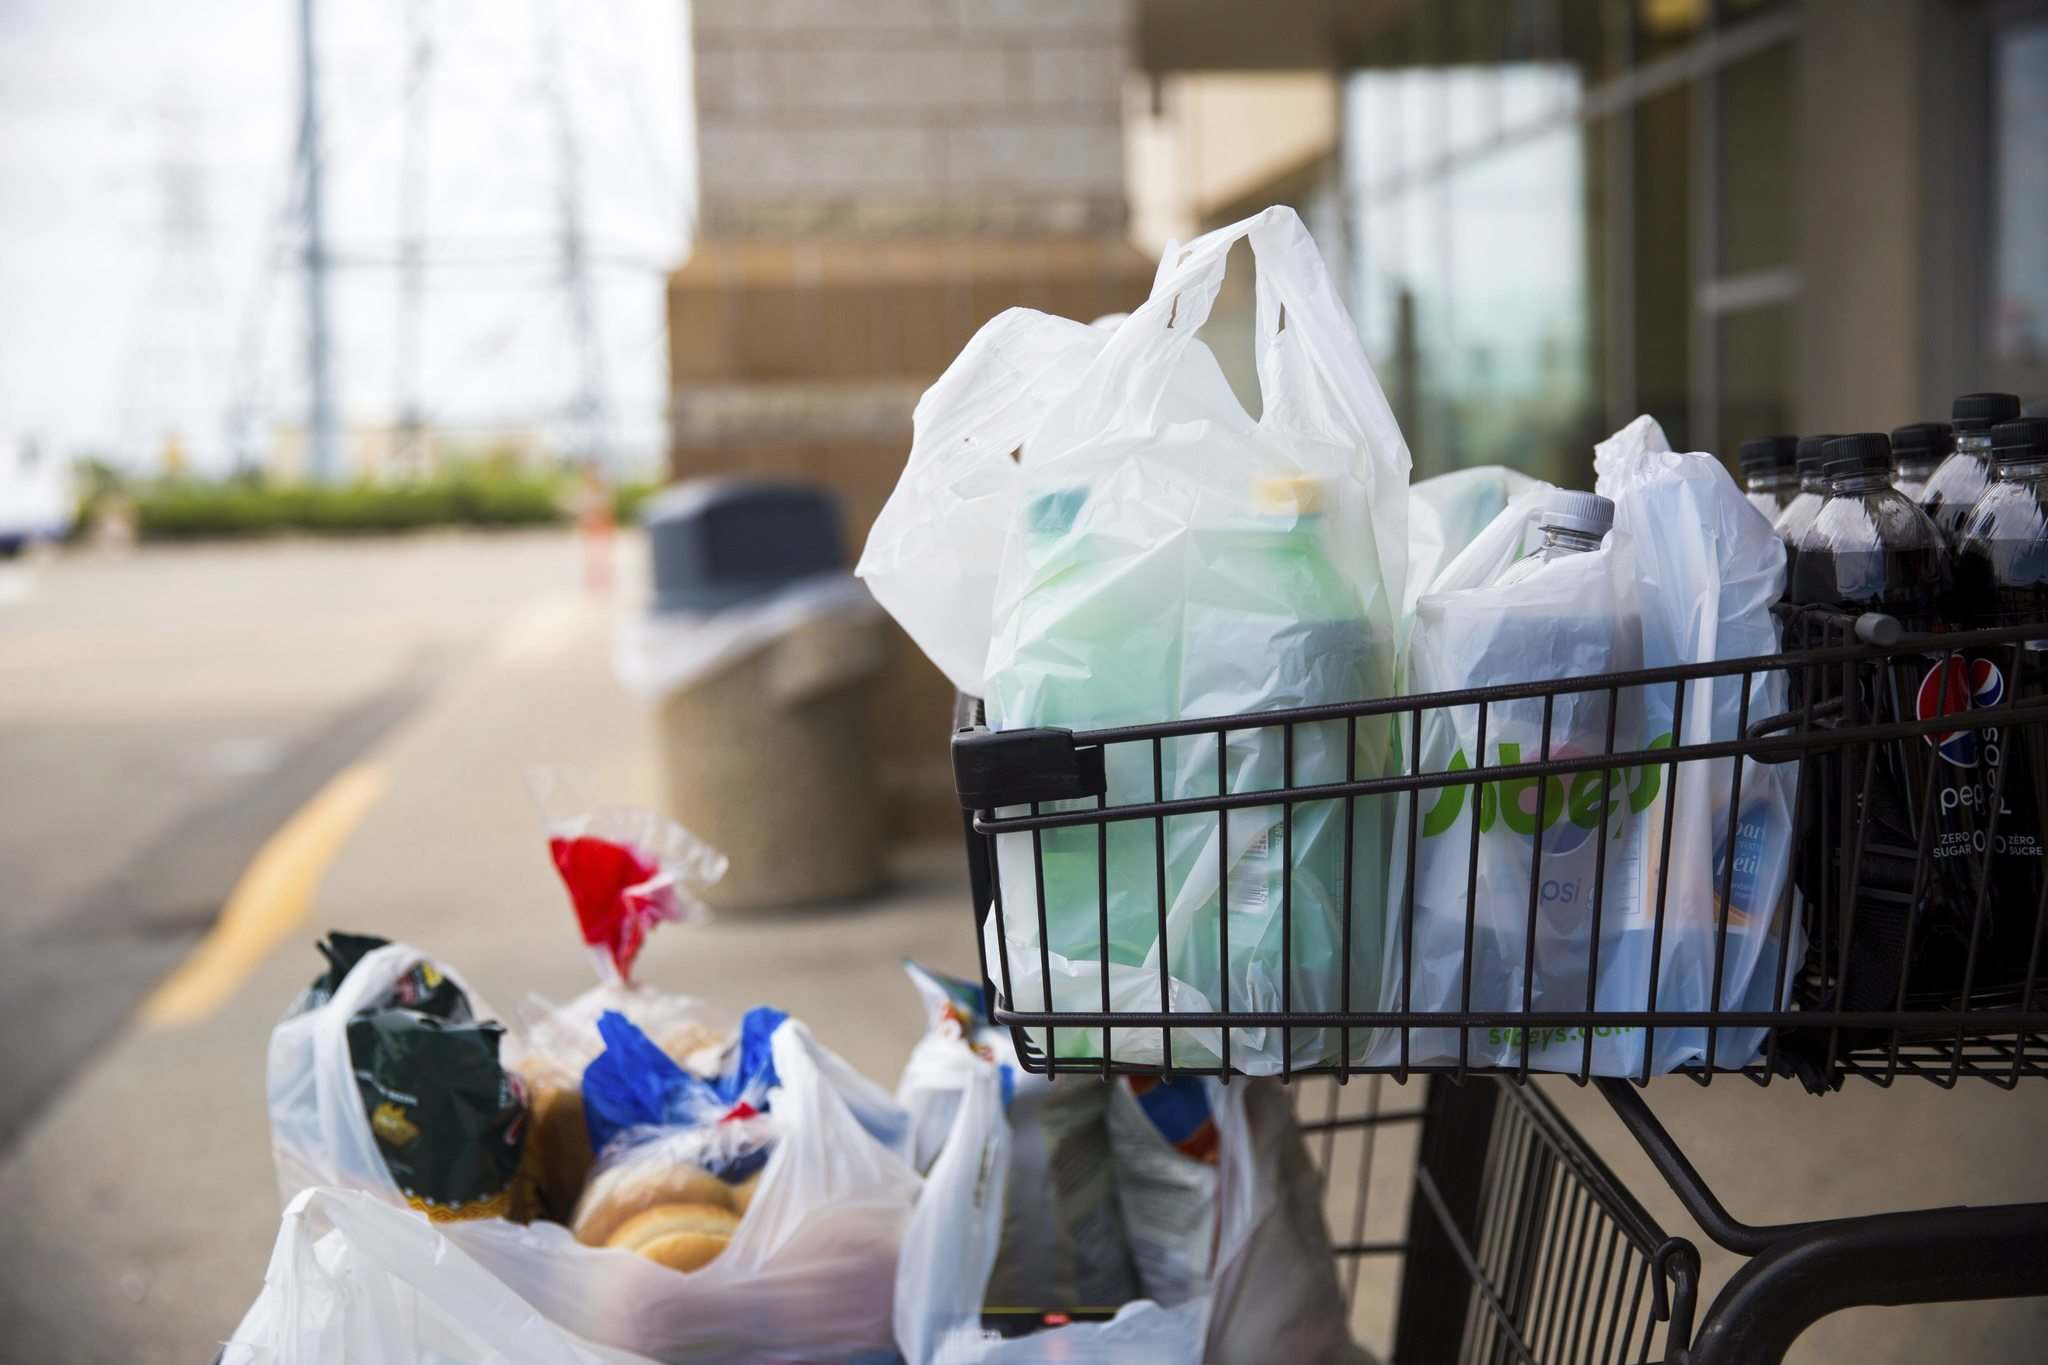 MIKAELA MACKENZIE / WINNIPEG FREE PRESS FILES</p><p>On average, 40 per cent of every load of groceries brought home by Canadians goes to waste.</p>